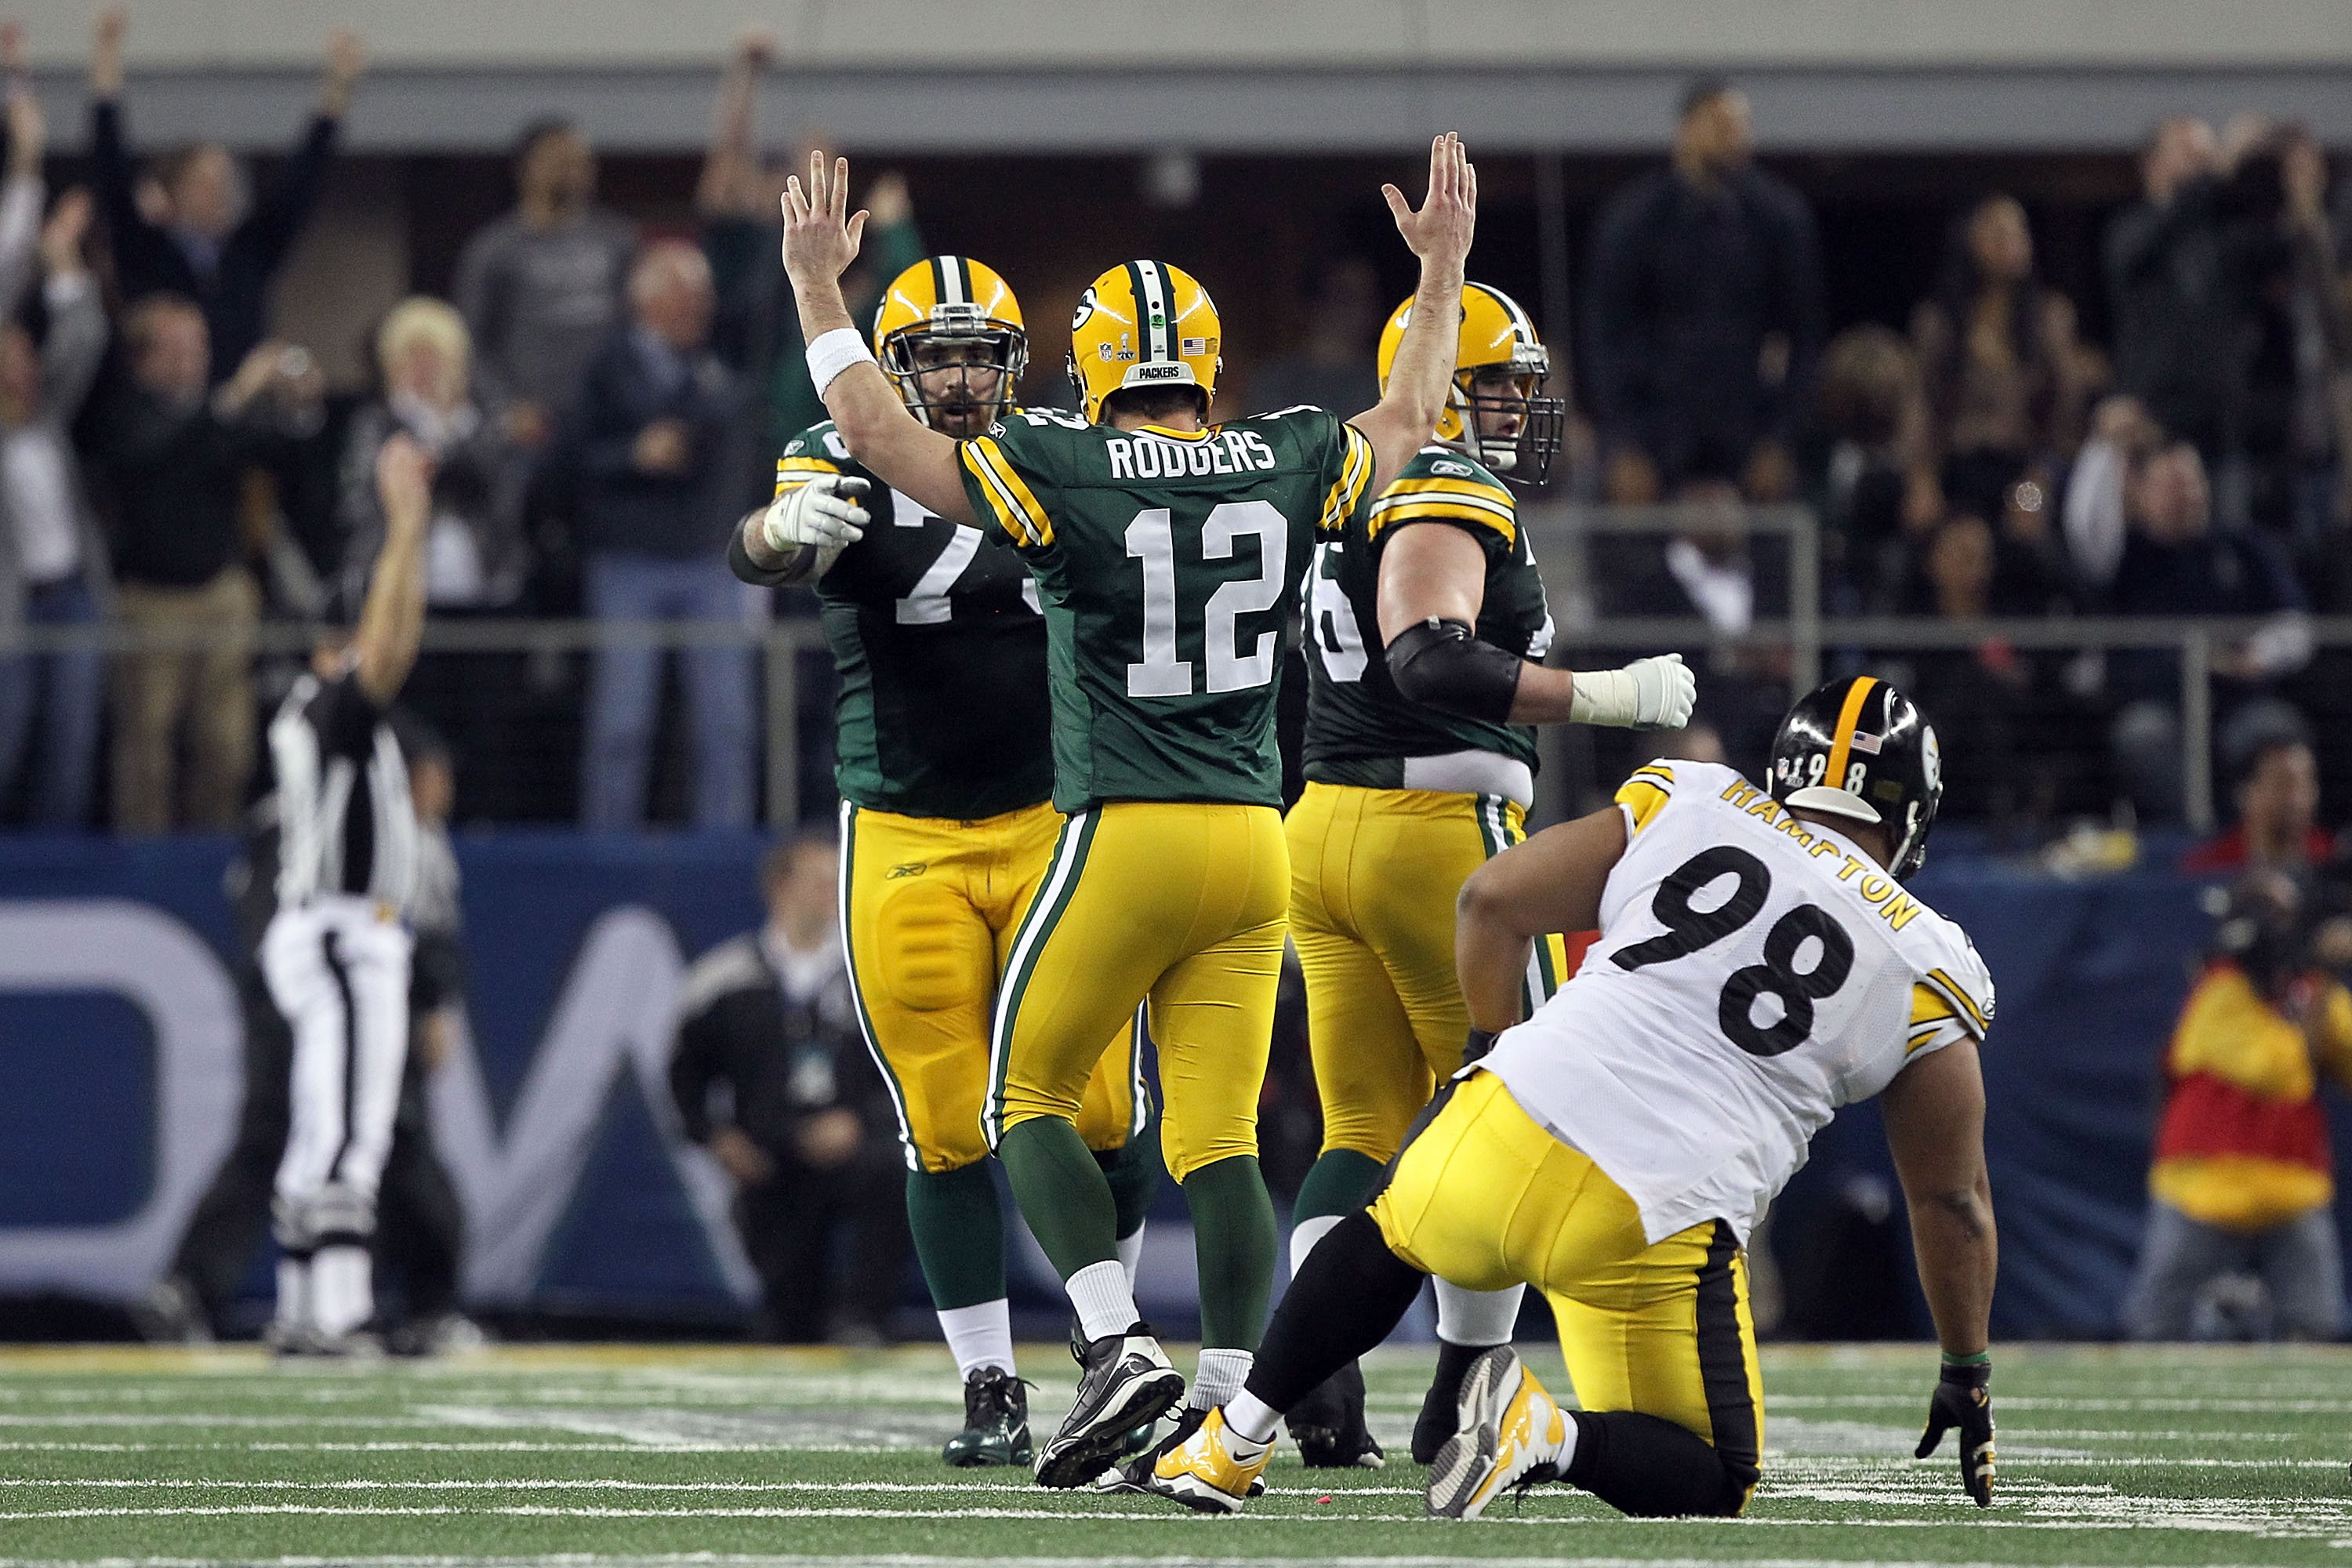 ARLINGTON, TX - FEBRUARY 06: Aaron Rodgers #12 of the Green Bay Packers celebrates late in the game against the Pittsburgh Steelers during Super Bowl XLV at Cowboys Stadium on February 6, 2011 in Arlington, Texas.  (Photo by Al Bello/Getty Images)